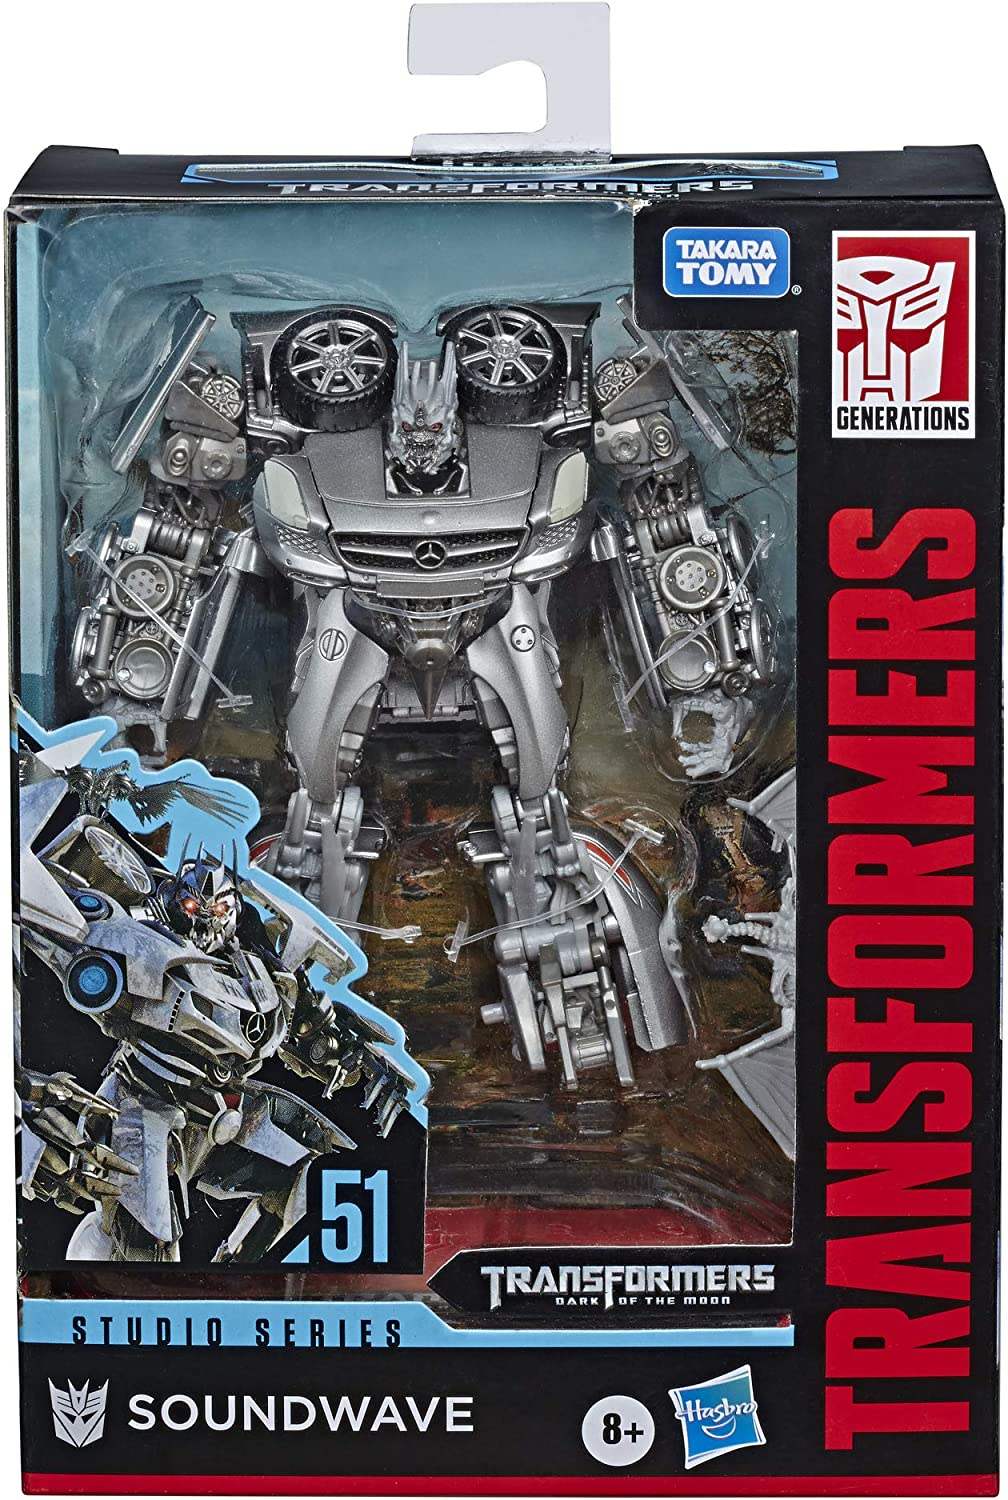 """Transformers Toys Studio Series 51 Deluxe Class Dark of The Moon Movie Soundwave Action Figure - Kids Ages 8 & Up, 4.5"""""""